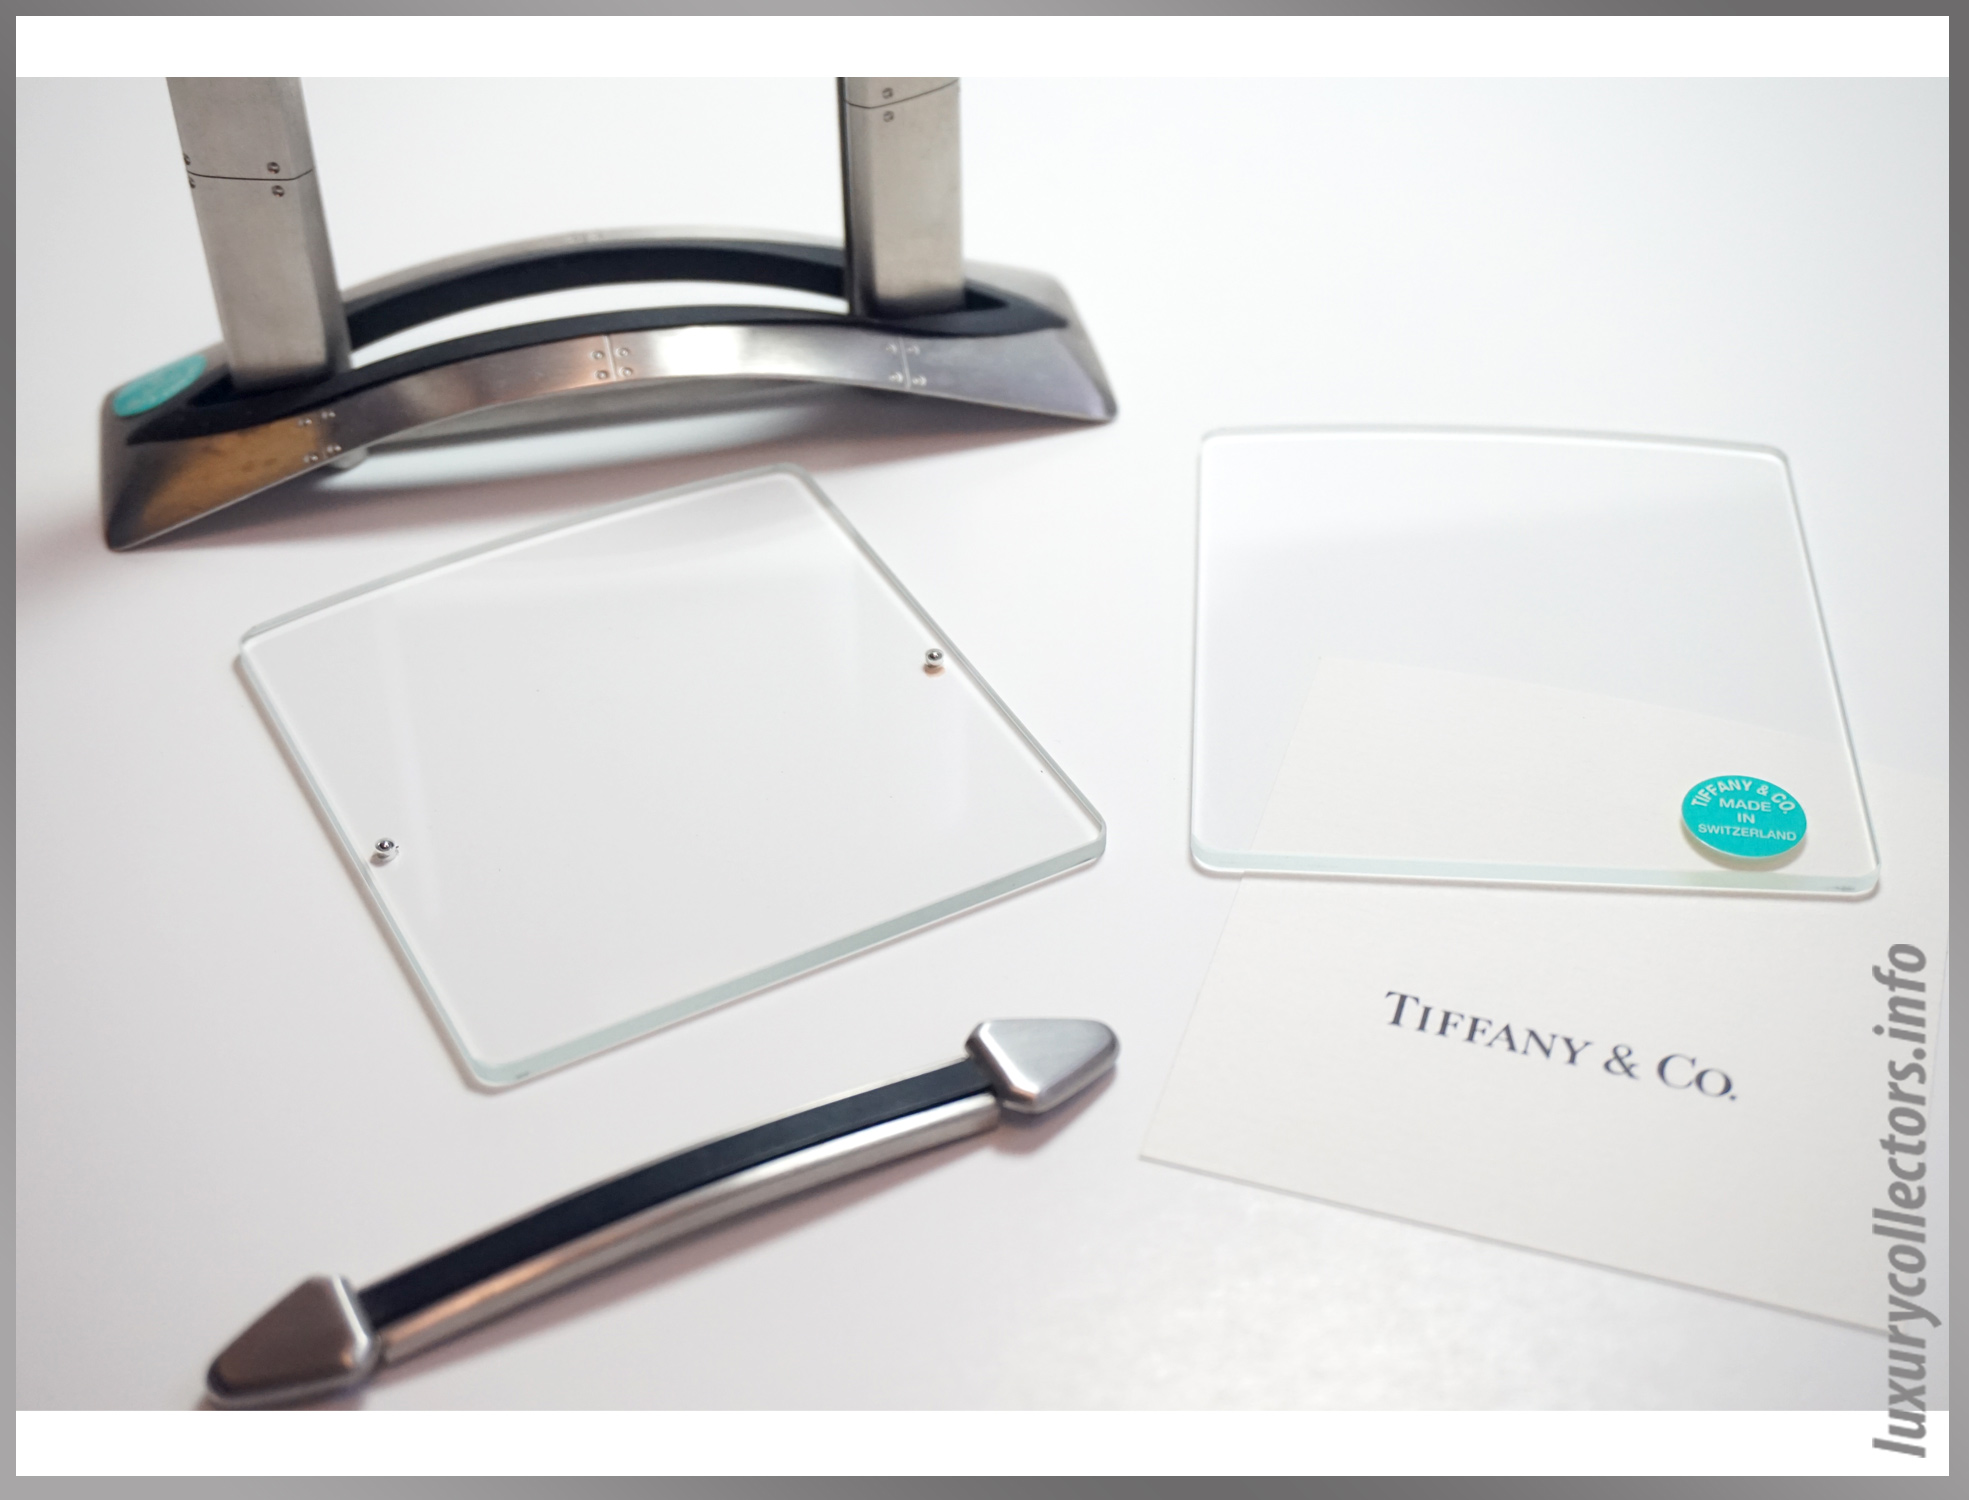 Tiffany & and Co. Streamerica Stainless Steel Airframe Picture Photo Frame Medium Swiss Made in Switzerland Detailed logo glass panels